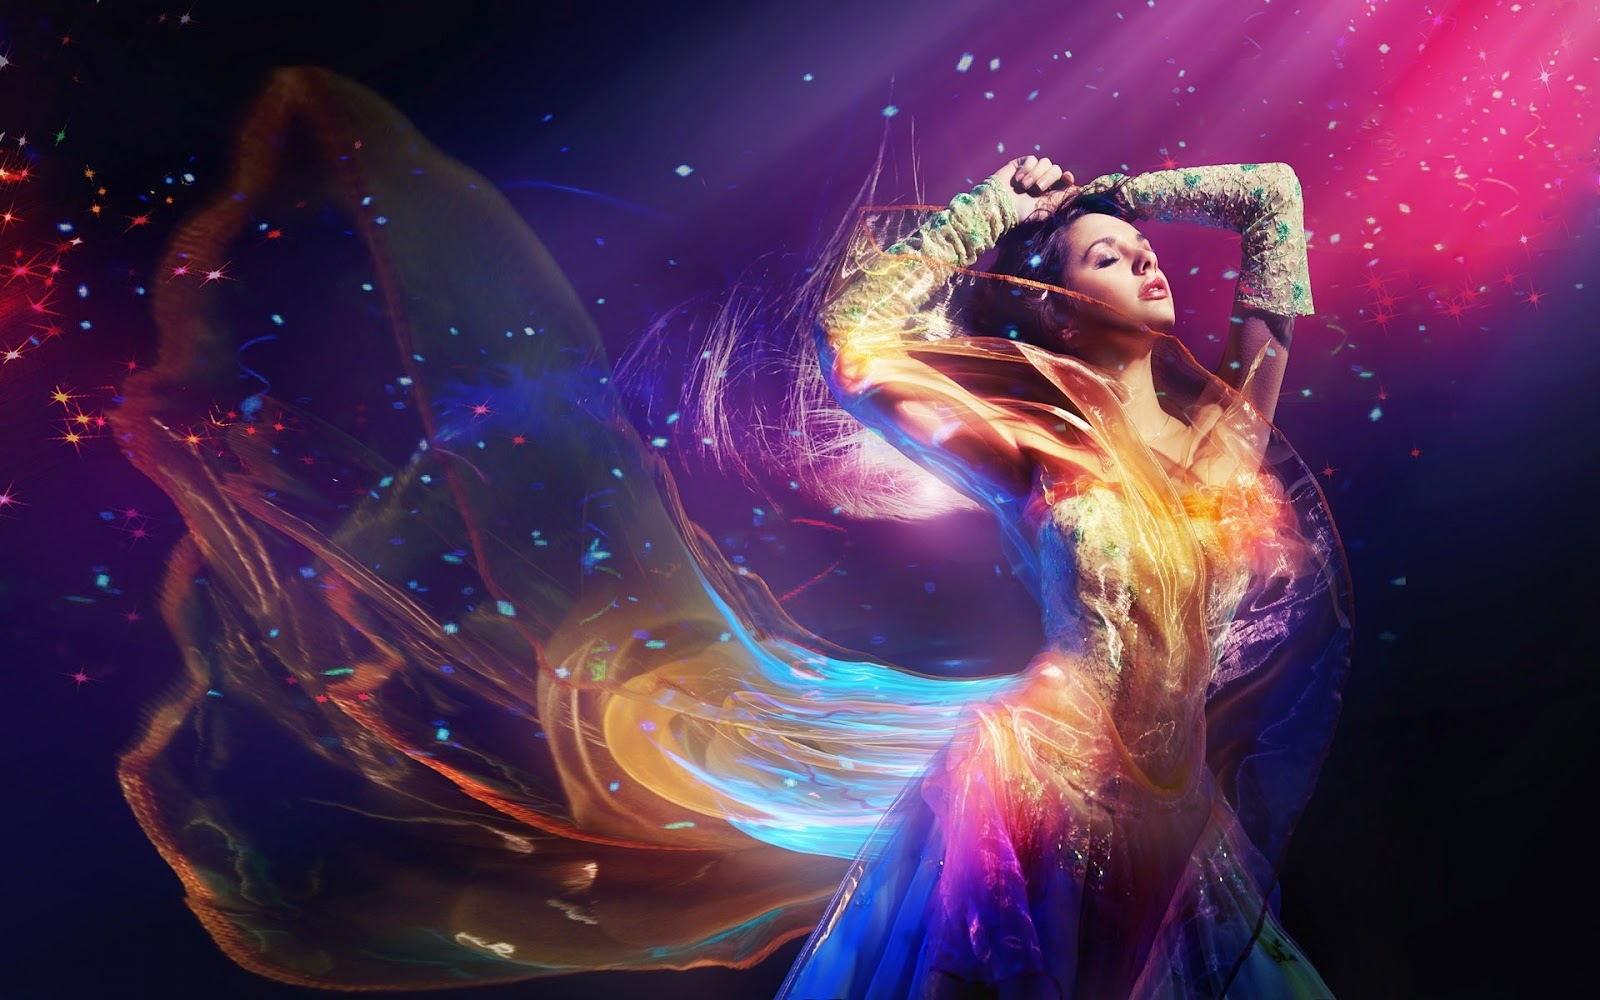 Abstract Painting Of Girl Dancing Creative Wallpapers For Desktop Wallpaper And Pictures